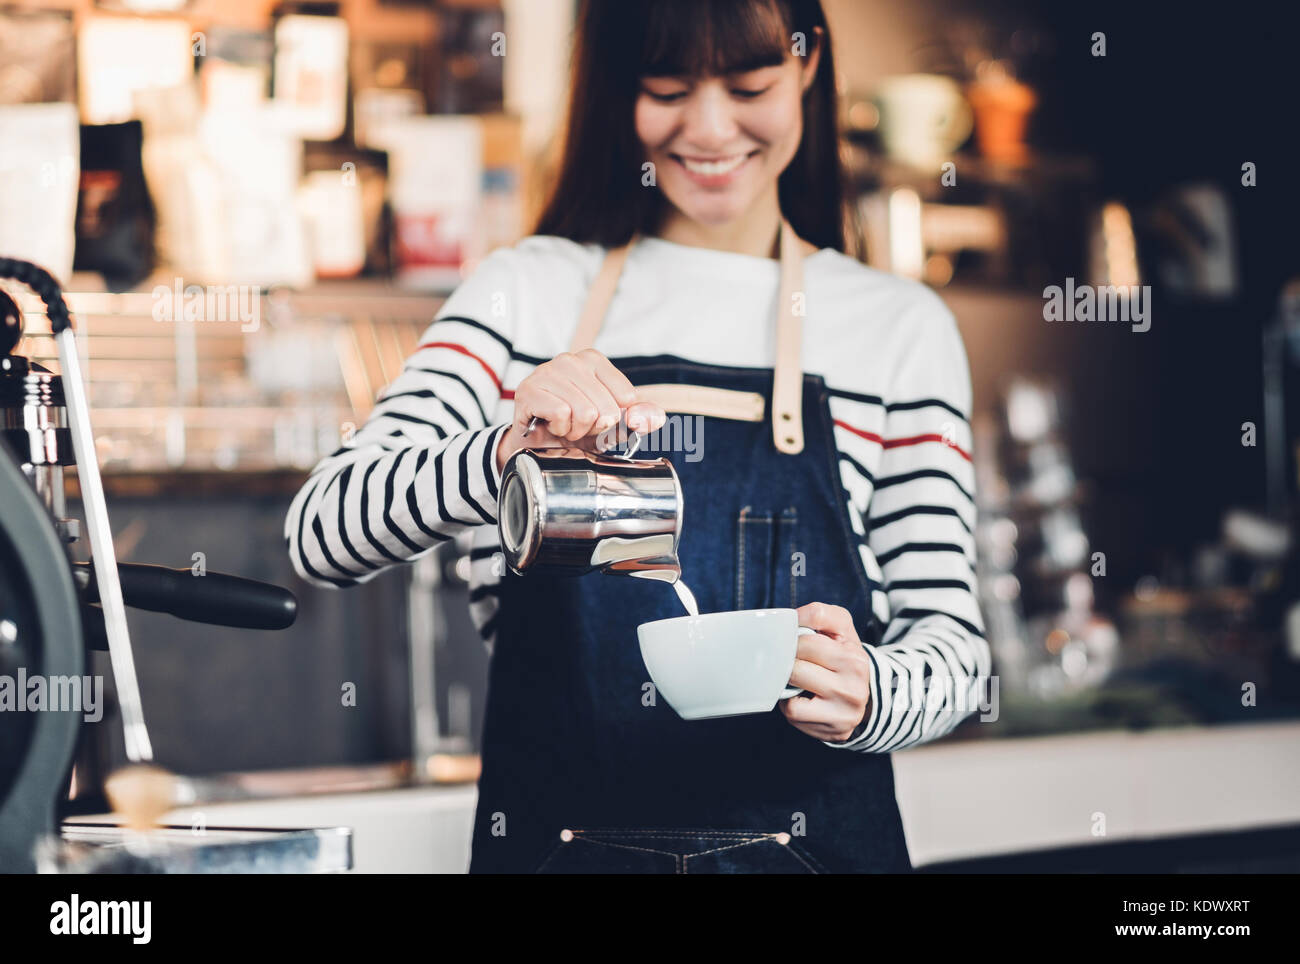 Asia woman barista pour milk into hot coffee cup at counter bar in front of machine in cafe restaurant,Food business - Stock Image